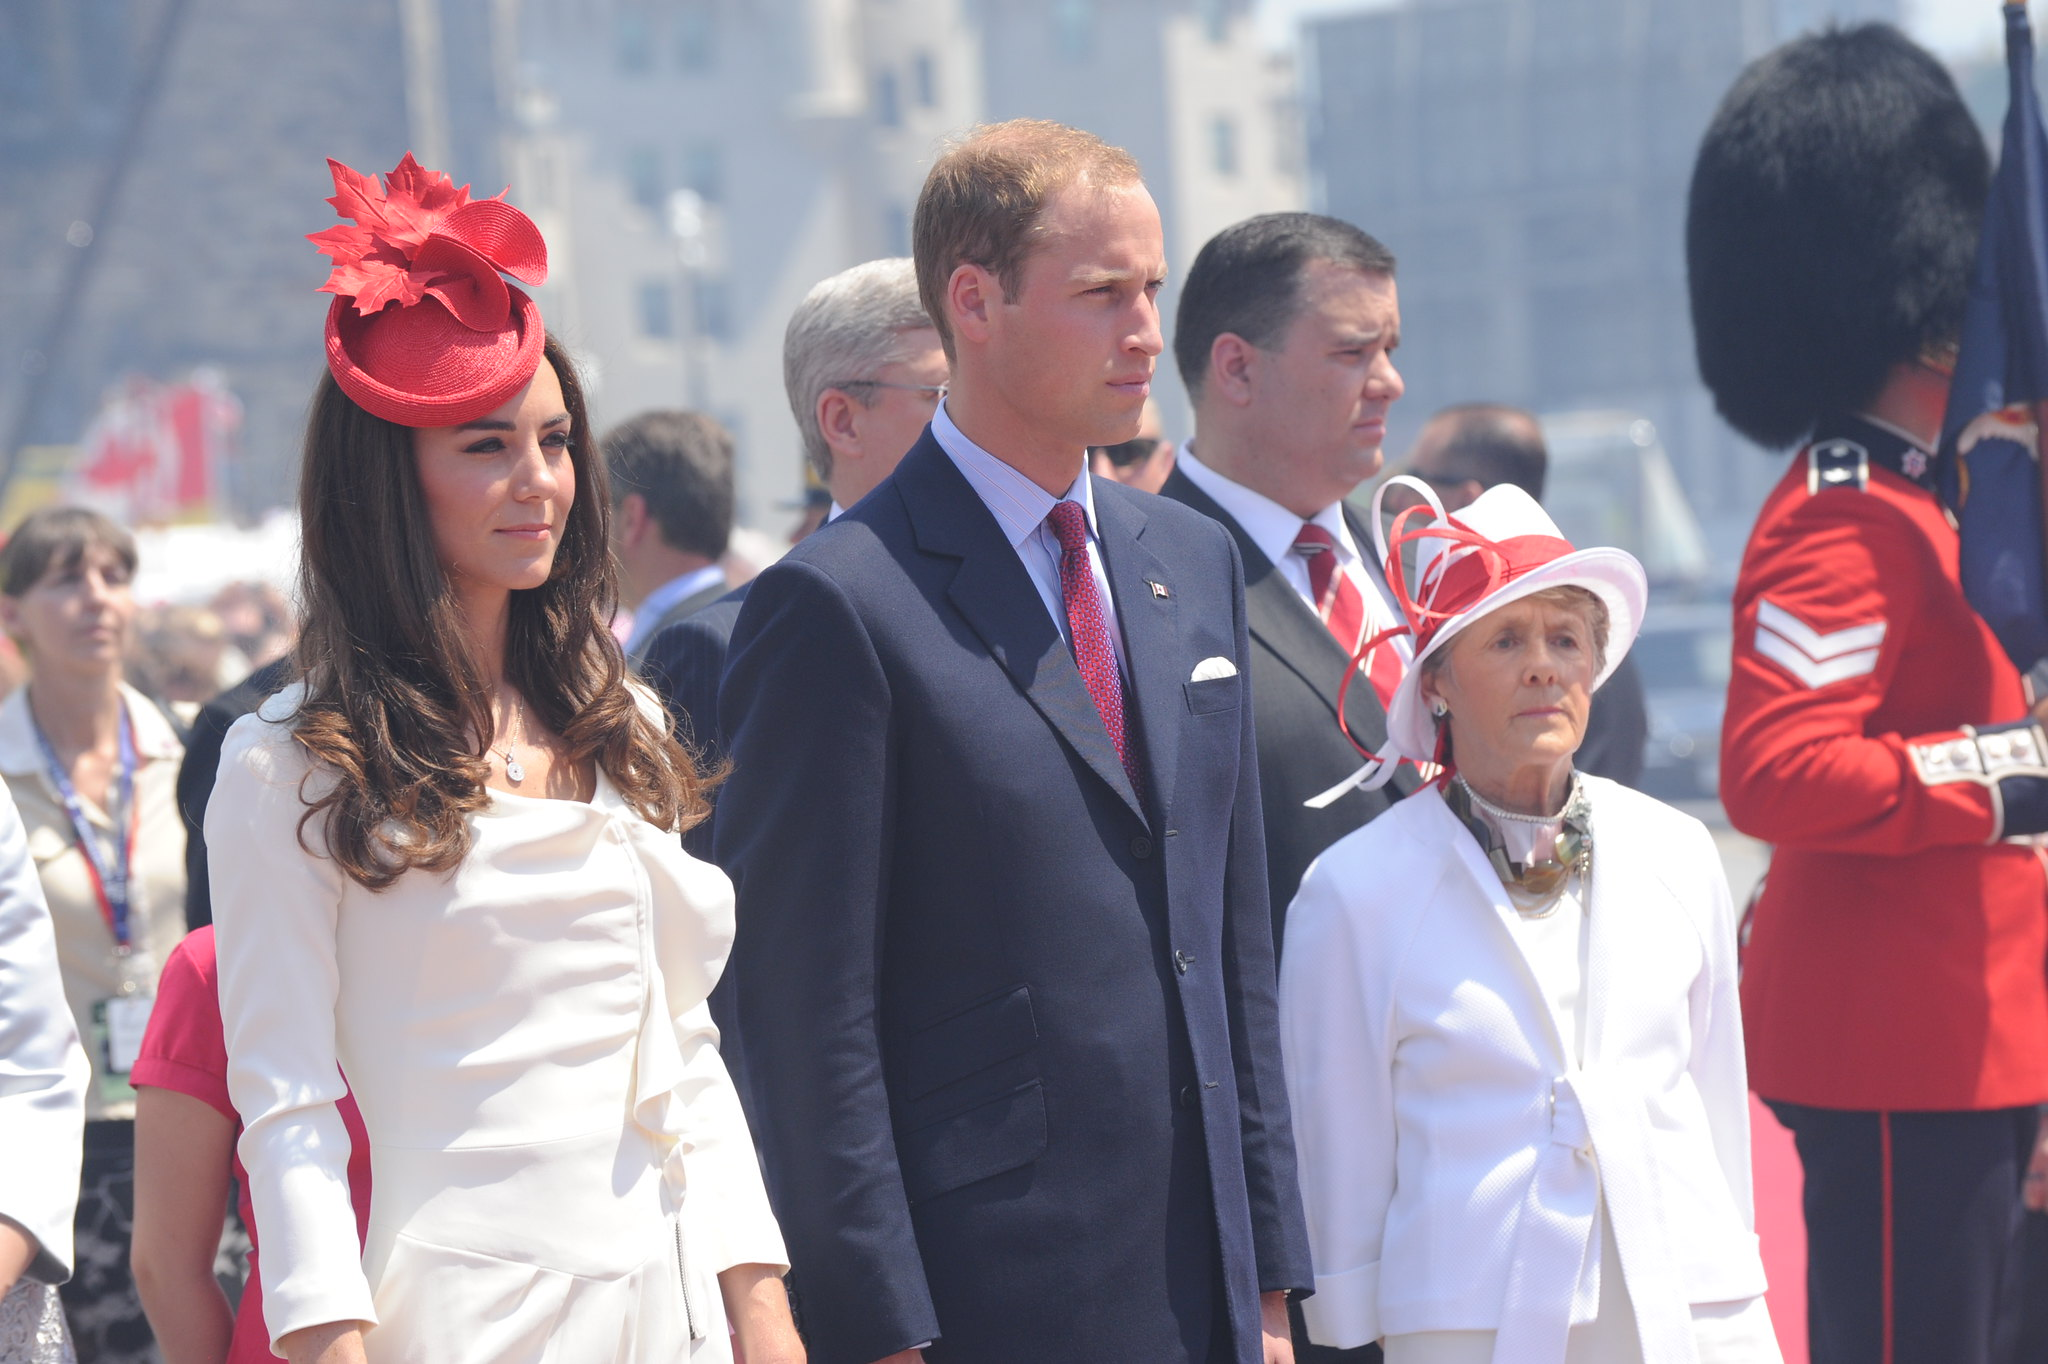 The Duke and Duchess of Cambridge attended Canada Day celebration in 2011